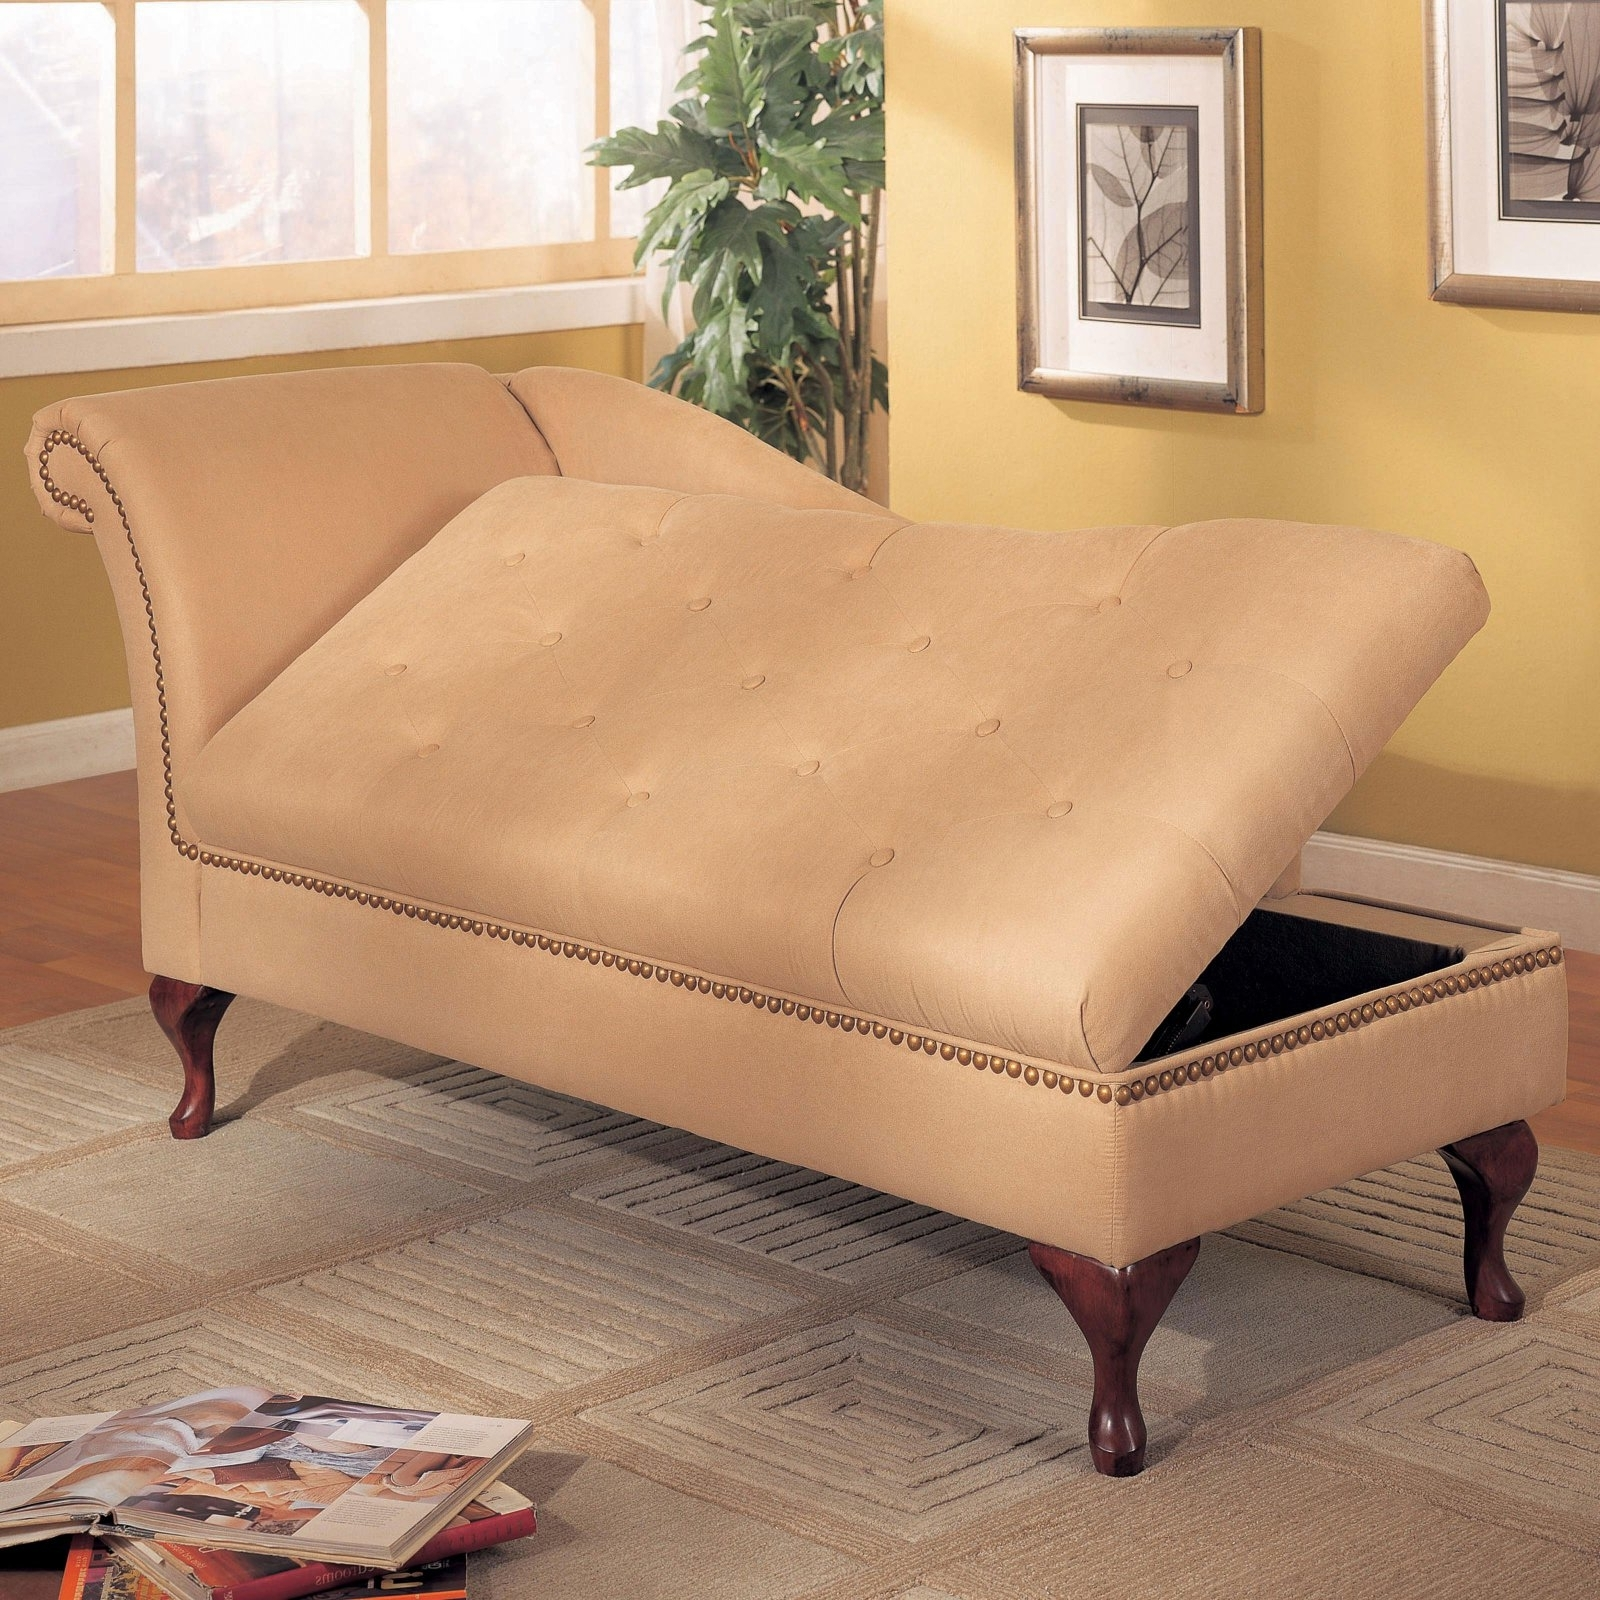 Best And Newest Indoor Chaise › Indoor Chaise Lounge With Storage Chaise Lounges With Chaise Lounges With Storage (View 4 of 15)